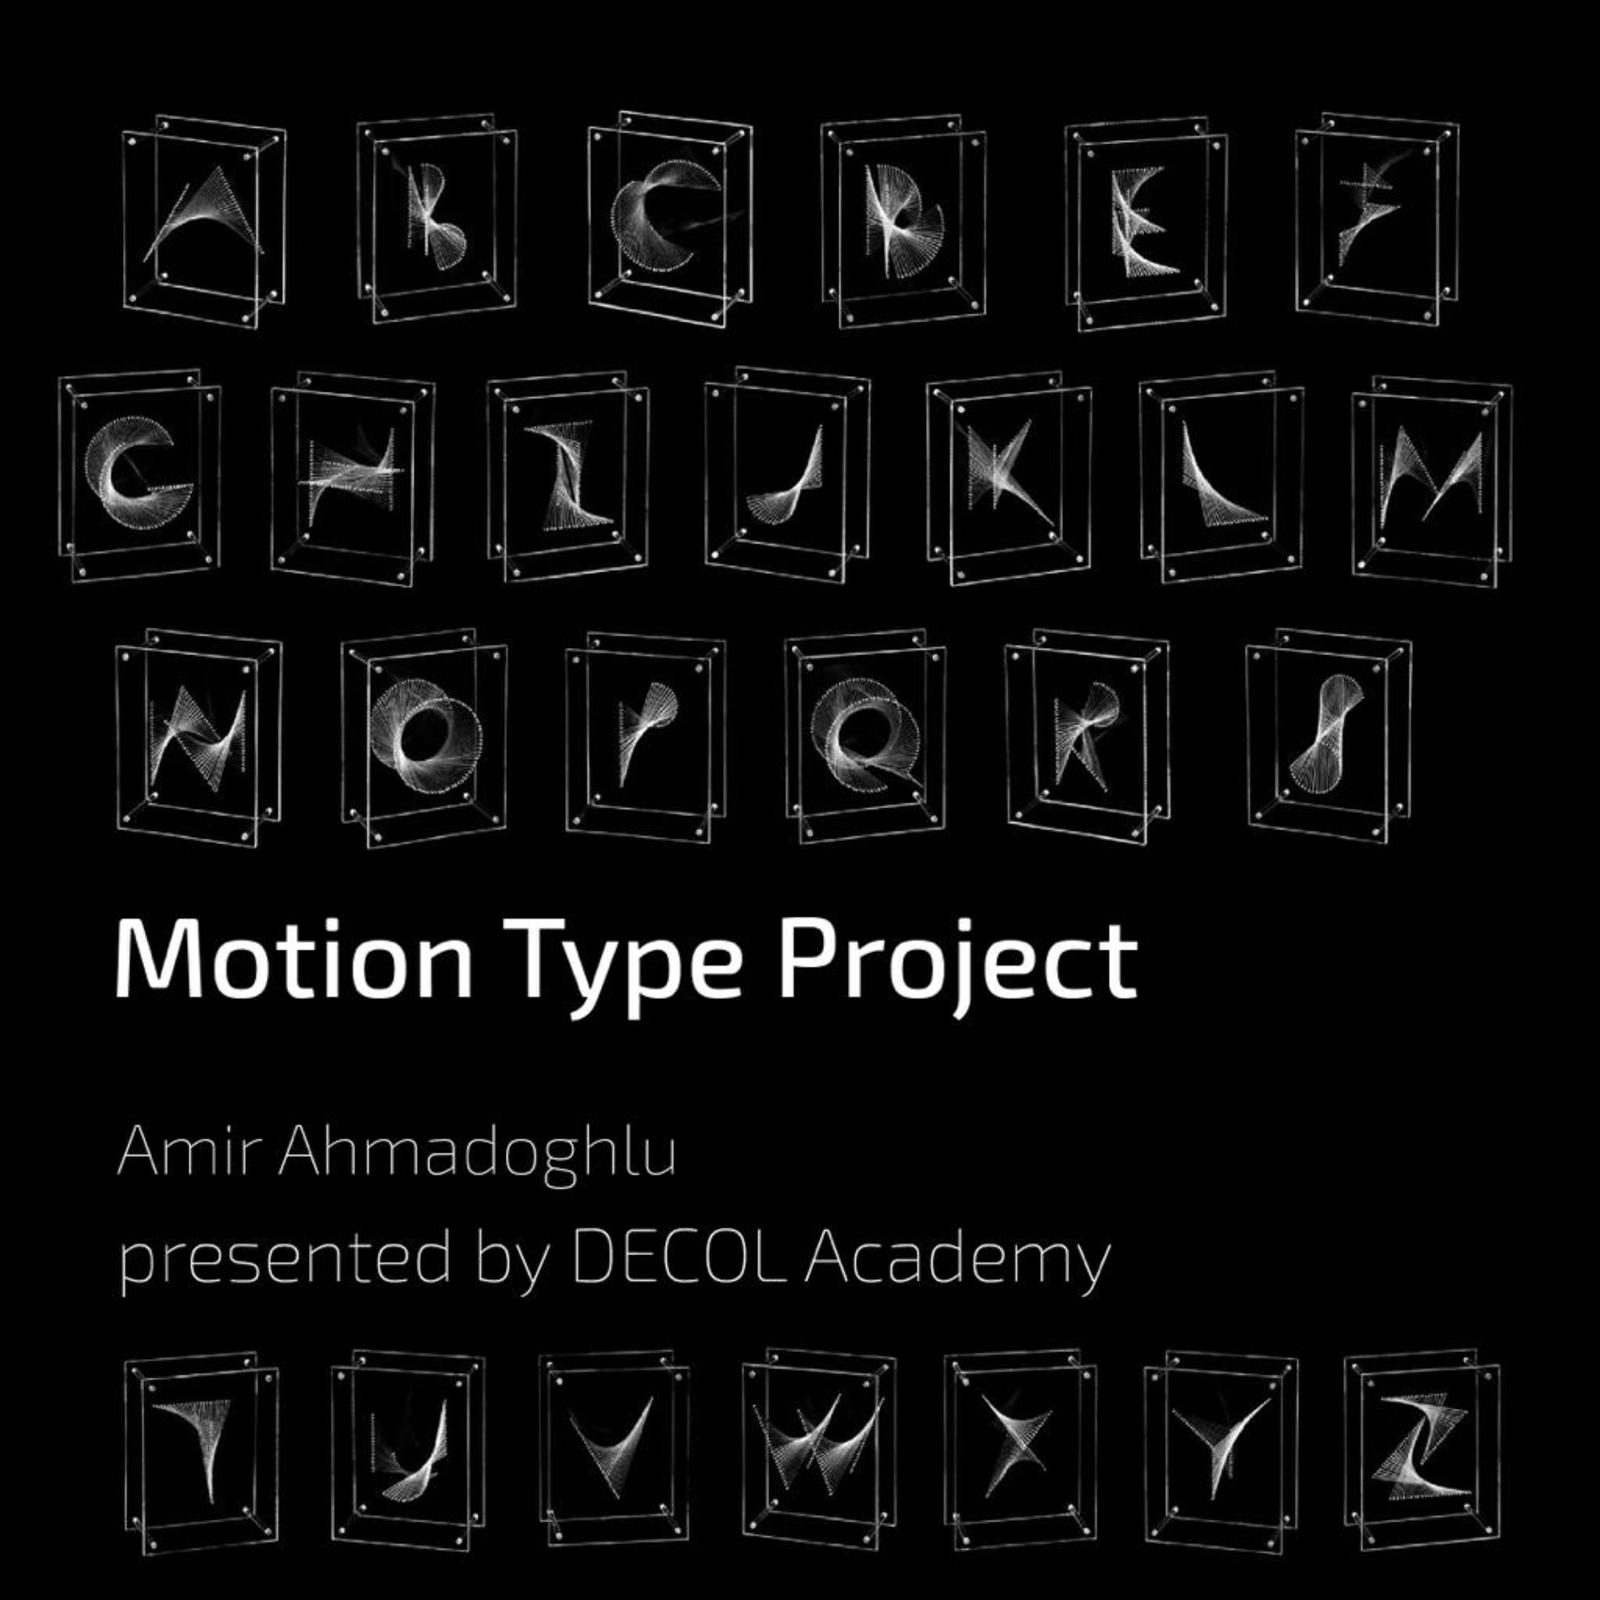 workshop: motion type project by decol academy